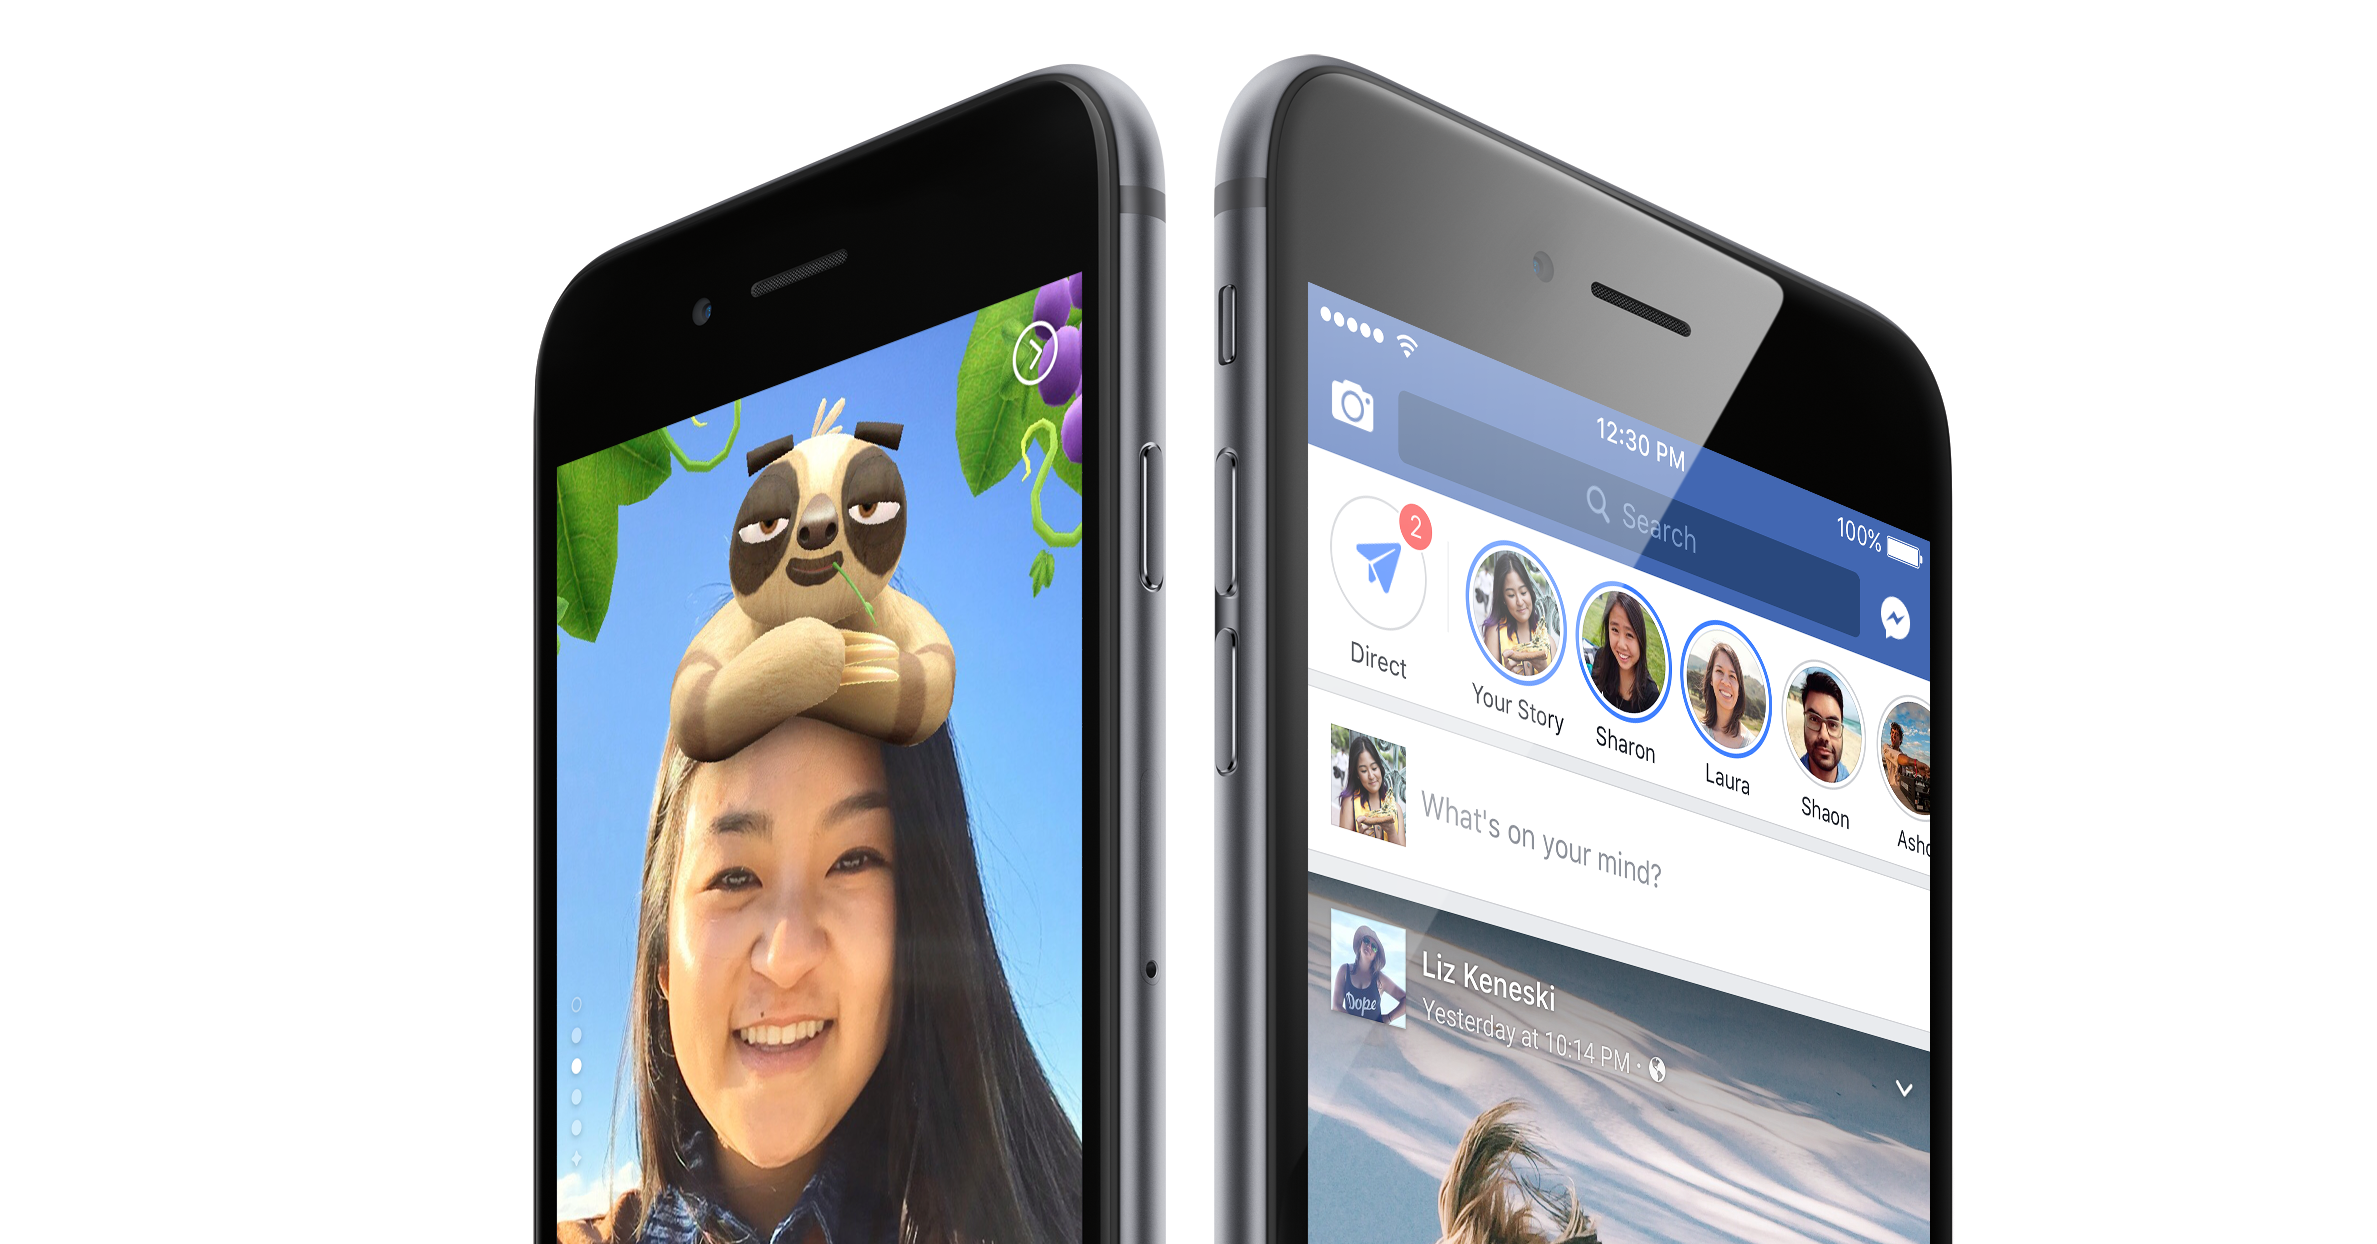 Facebook Stories unlocks public sharing | TechCrunch